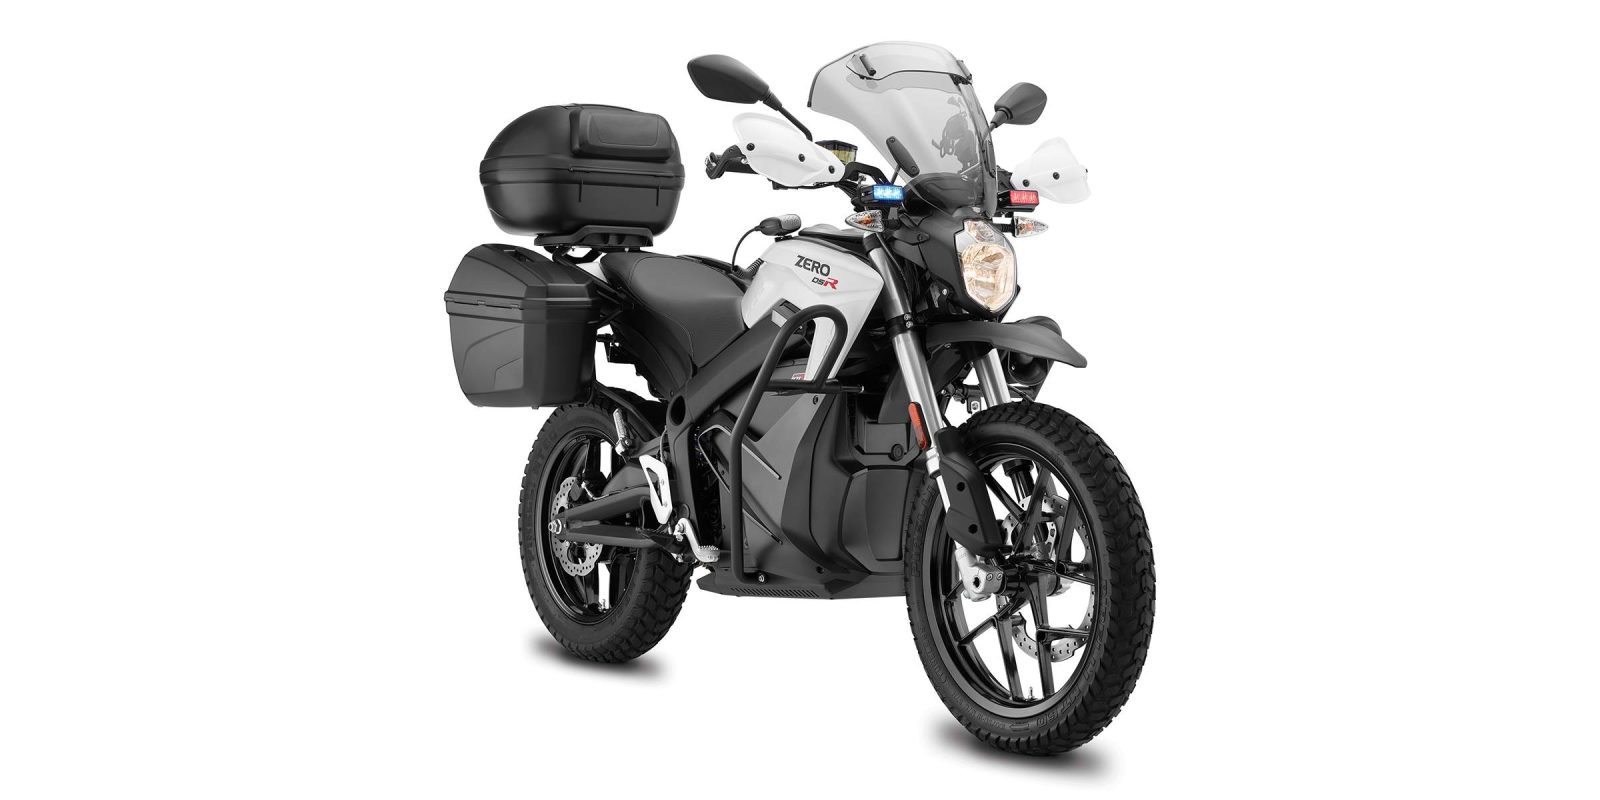 Mississippi State is the latest police force to adopt electric motorcycles